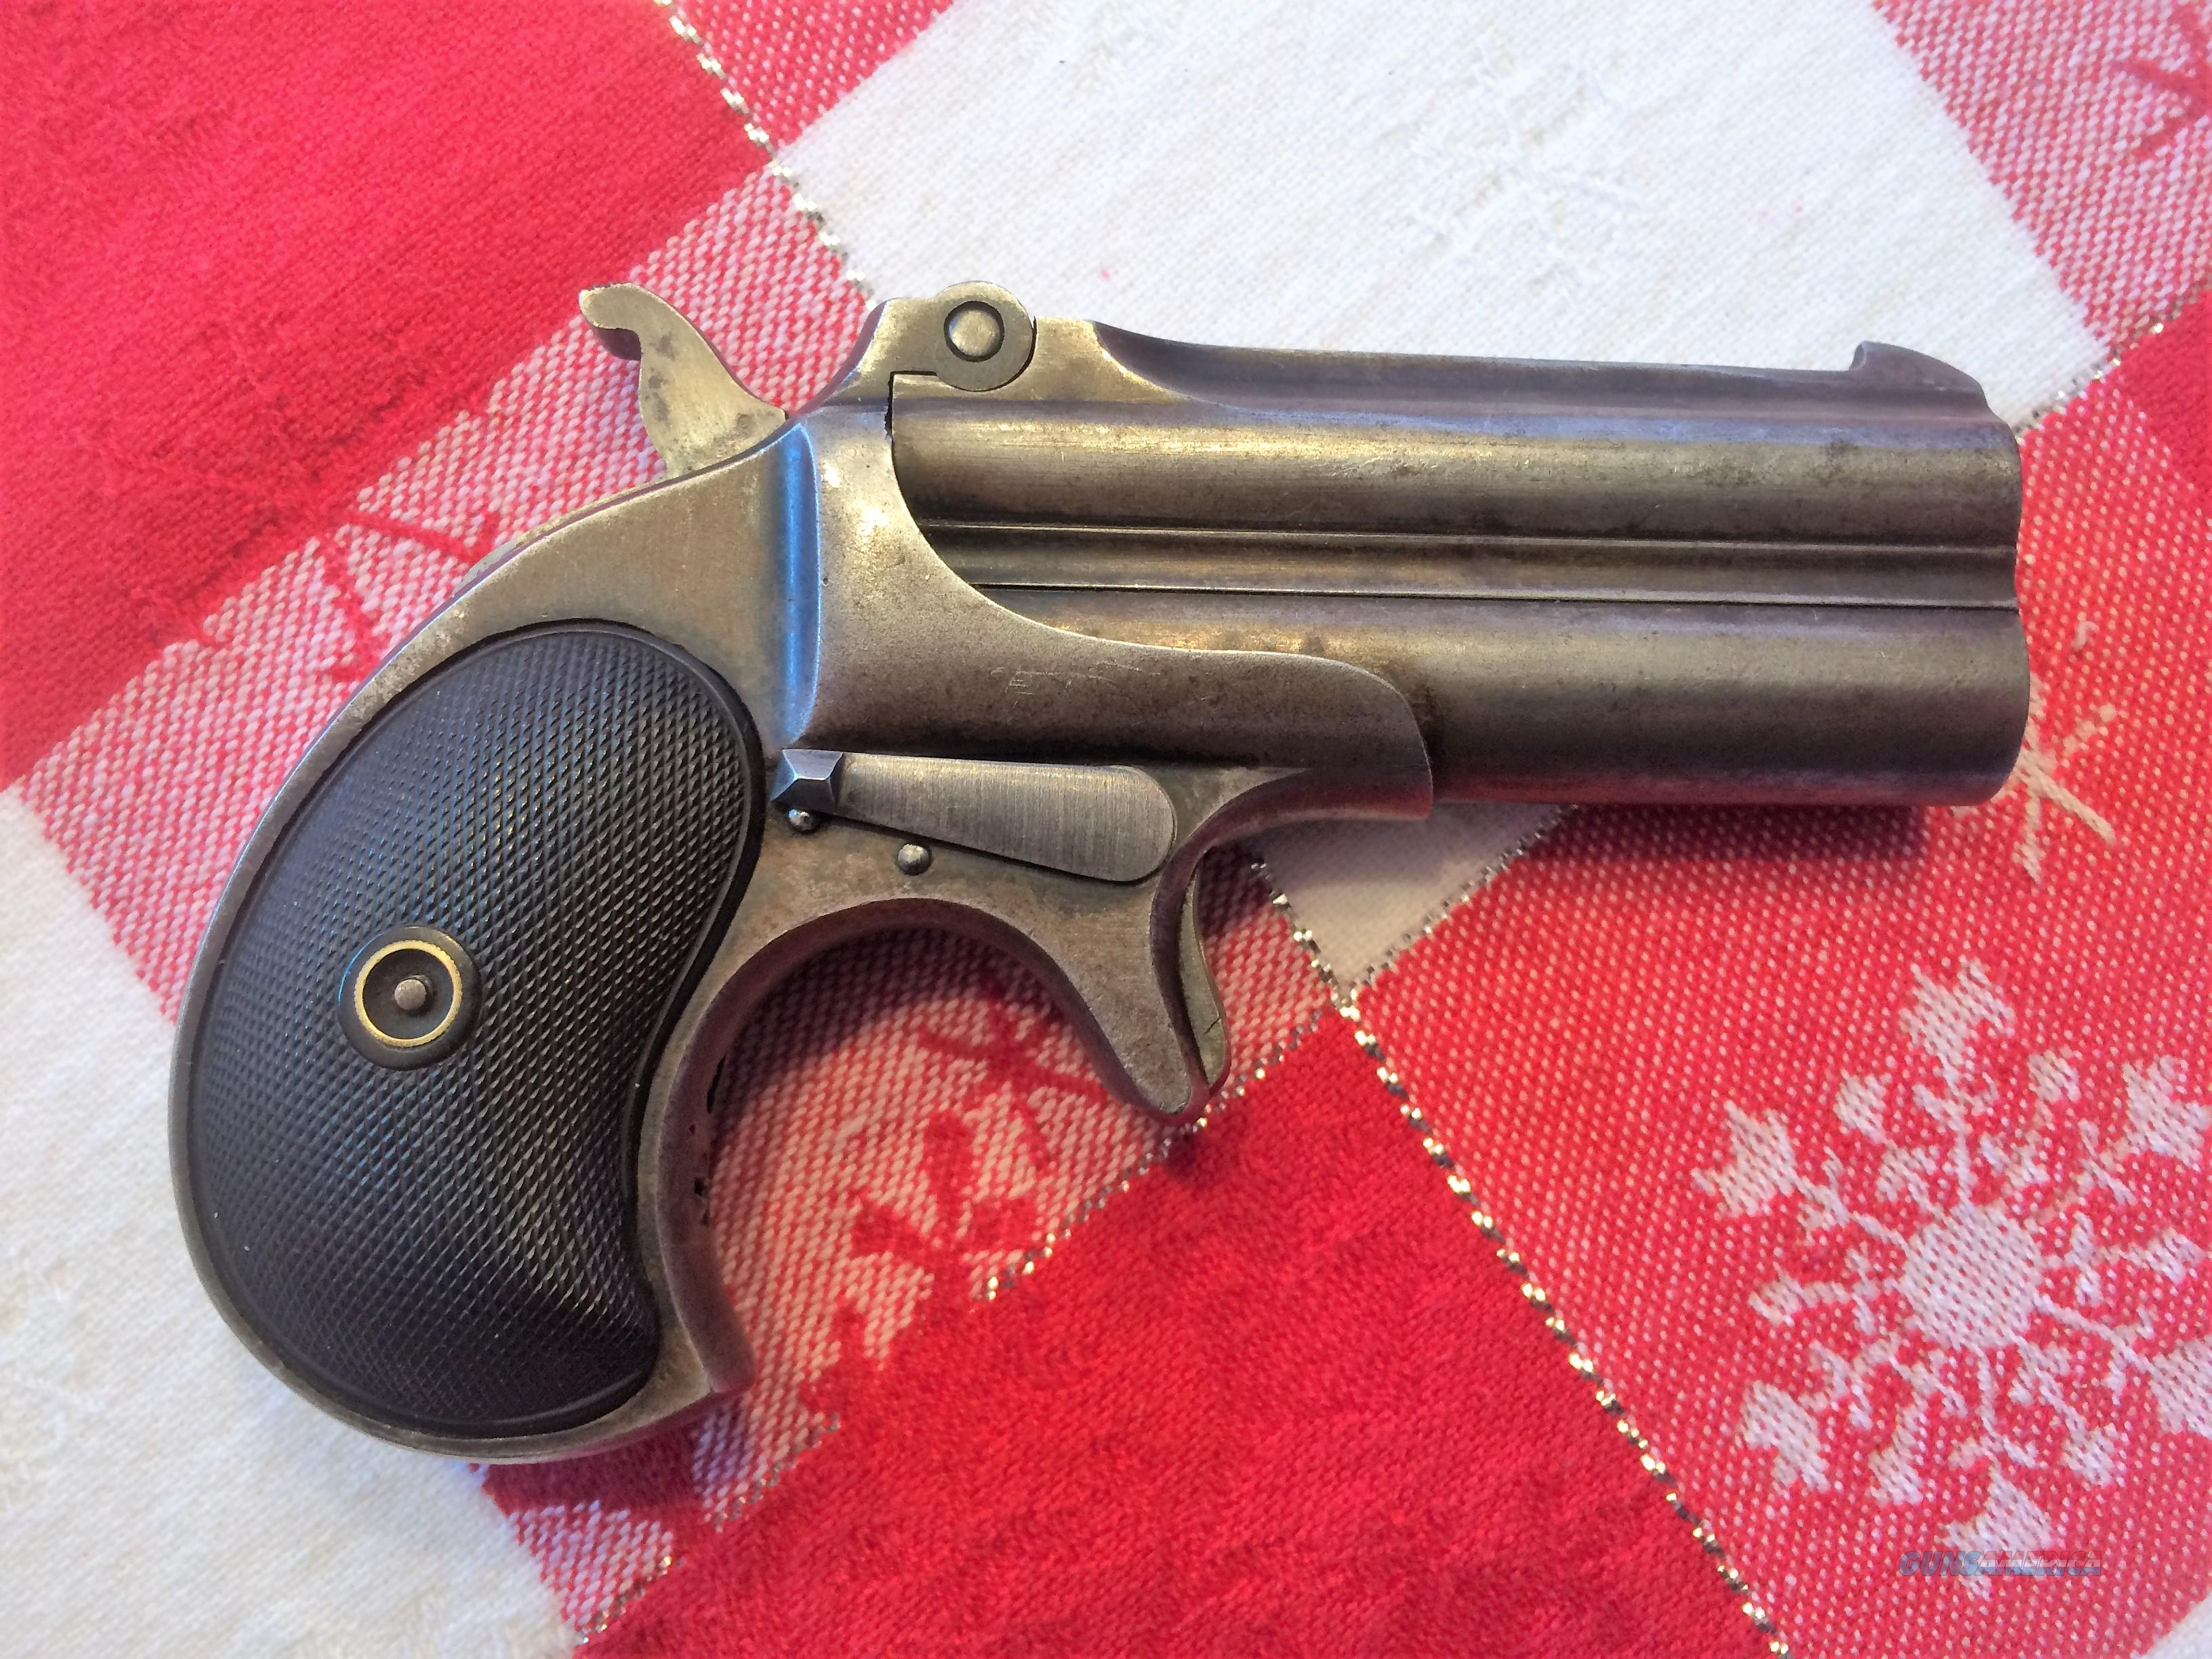 RARE!! 1888-1911 REMINGTON'S OVER/UNDER DERRINGER - .41 RIMFIRE - TYPE FOUR  Guns > Pistols > Remington Derringers